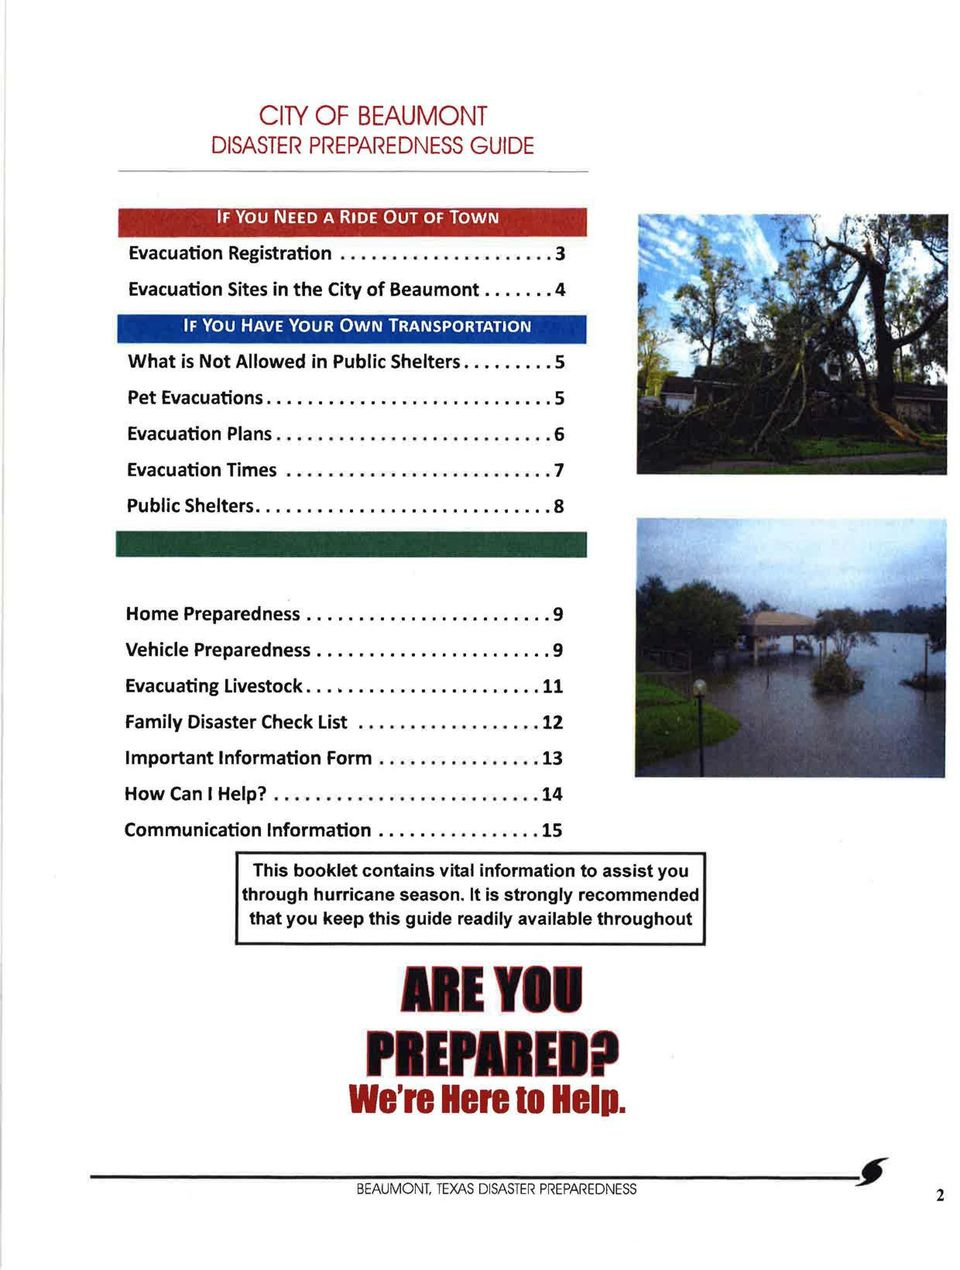 .. 8 Home Preparedness... 9 Vehicle Preparedness... 9 Evacuating Livestock...... 11 Family Disaster Check List... 12 Important Information Form... 13 How Can I Help?